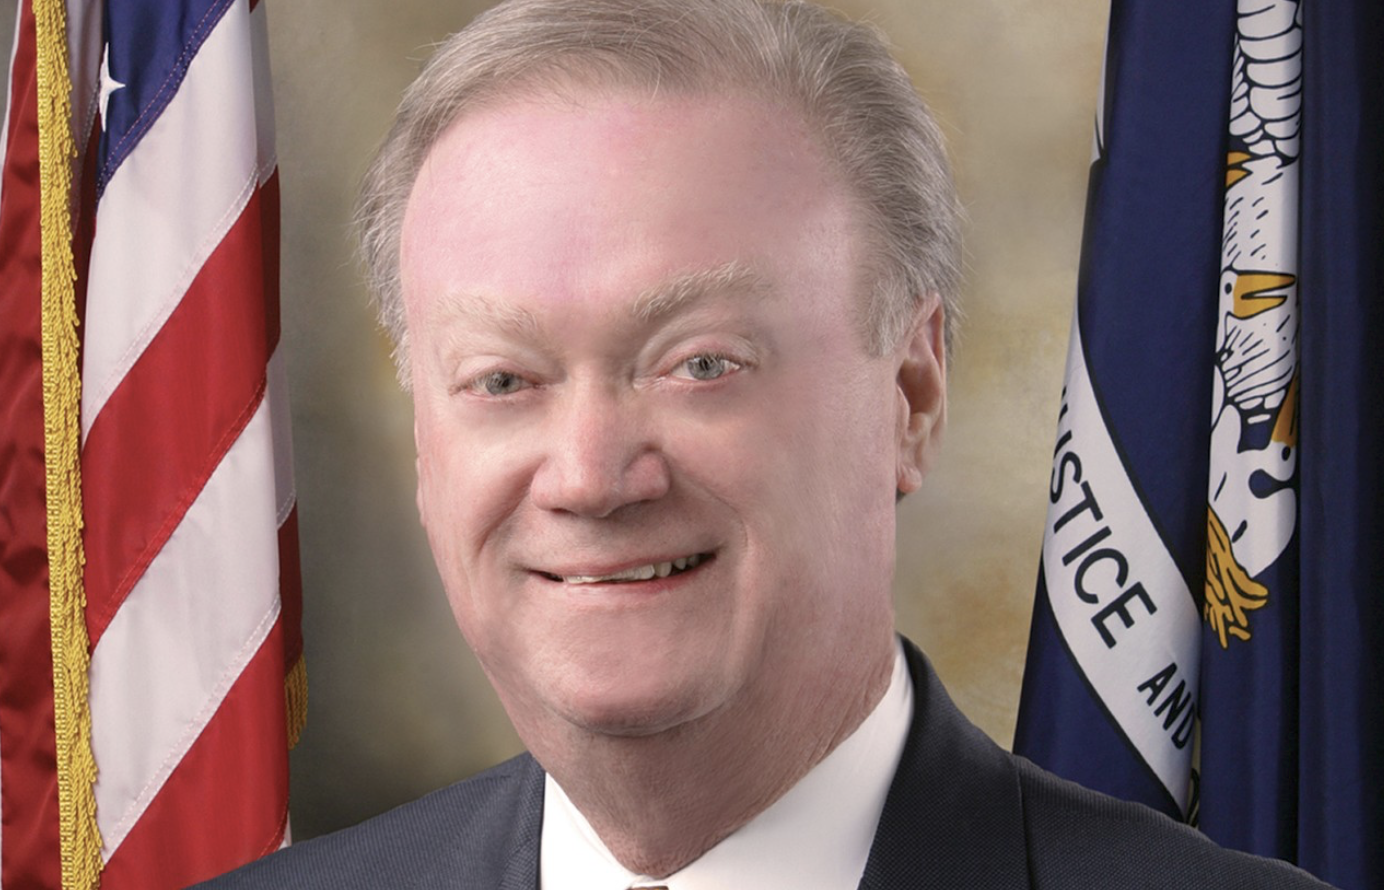 Our Views: After dissing Louisiana taxpayers, Tom Schedler paints himself as the victim